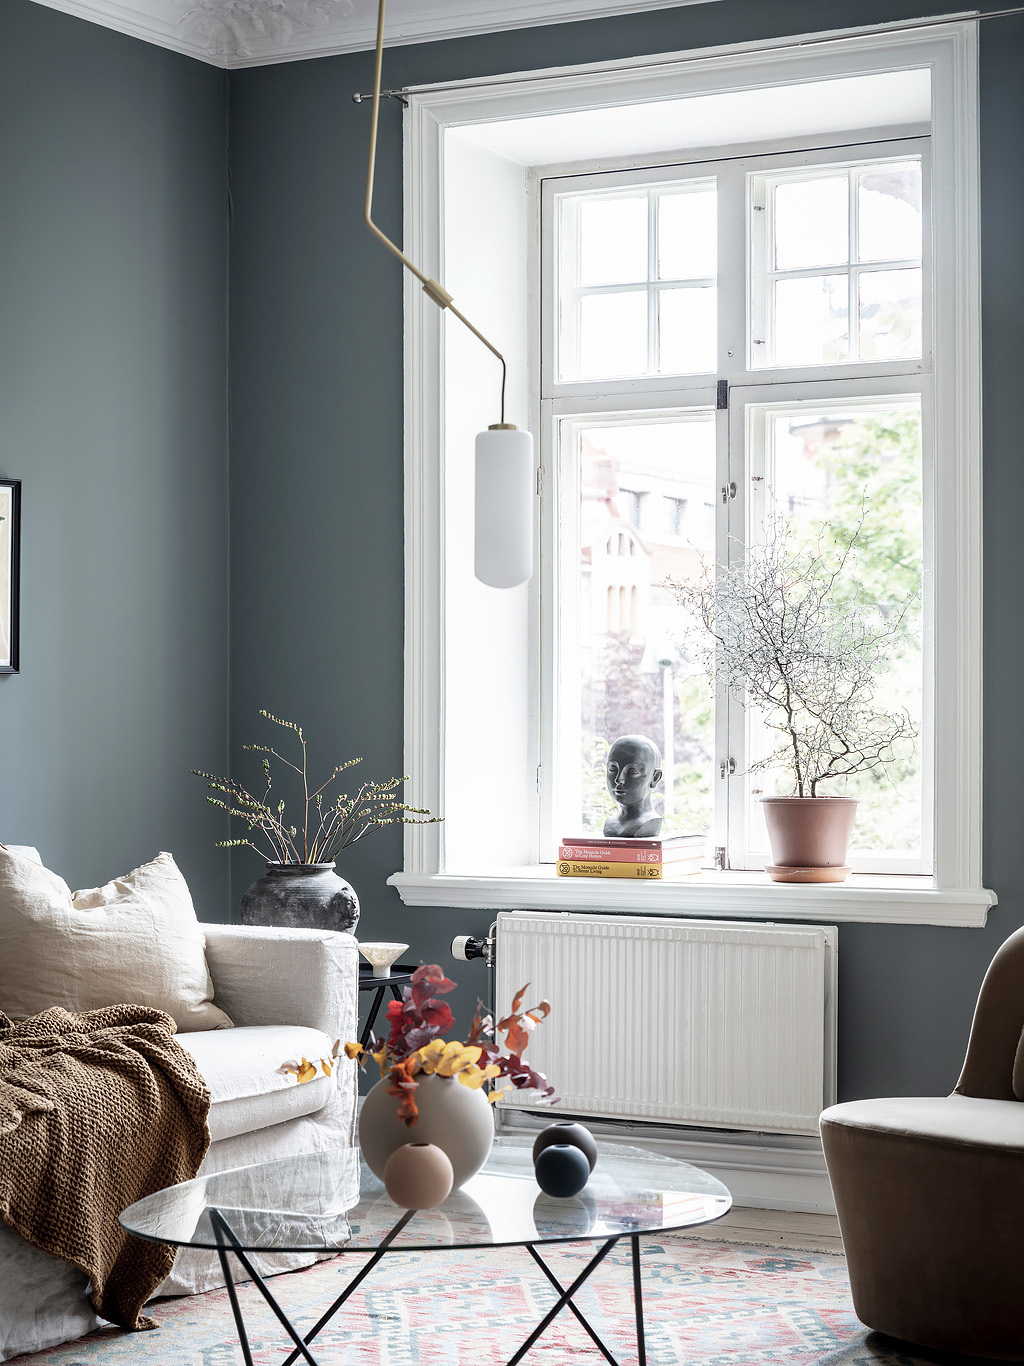 A mix of styles in just one apartment 04